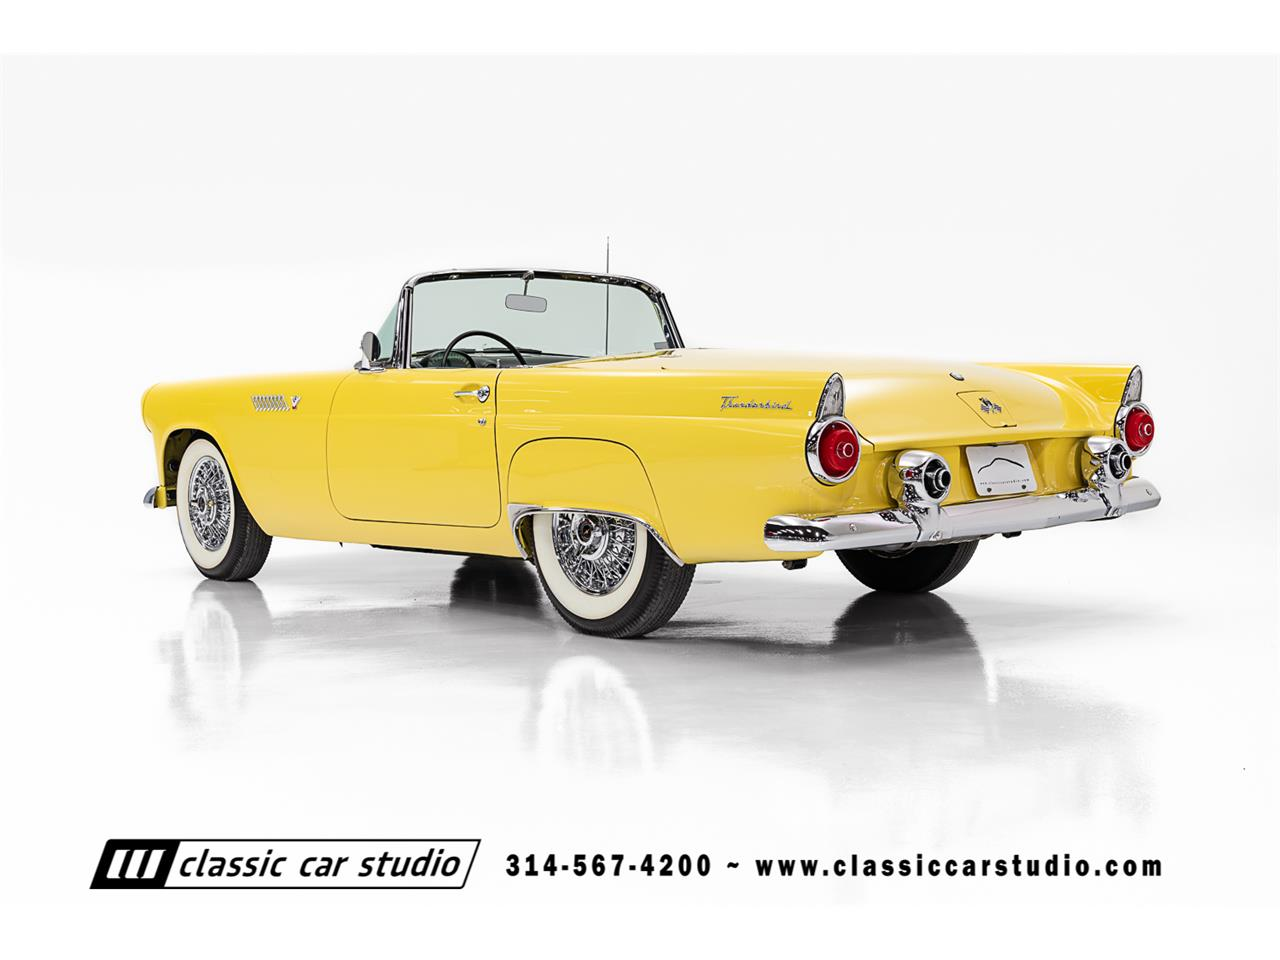 Large Picture of Classic '55 Thunderbird located in SAINT LOUIS Missouri Auction Vehicle Offered by Classic Car Studio - PKP1